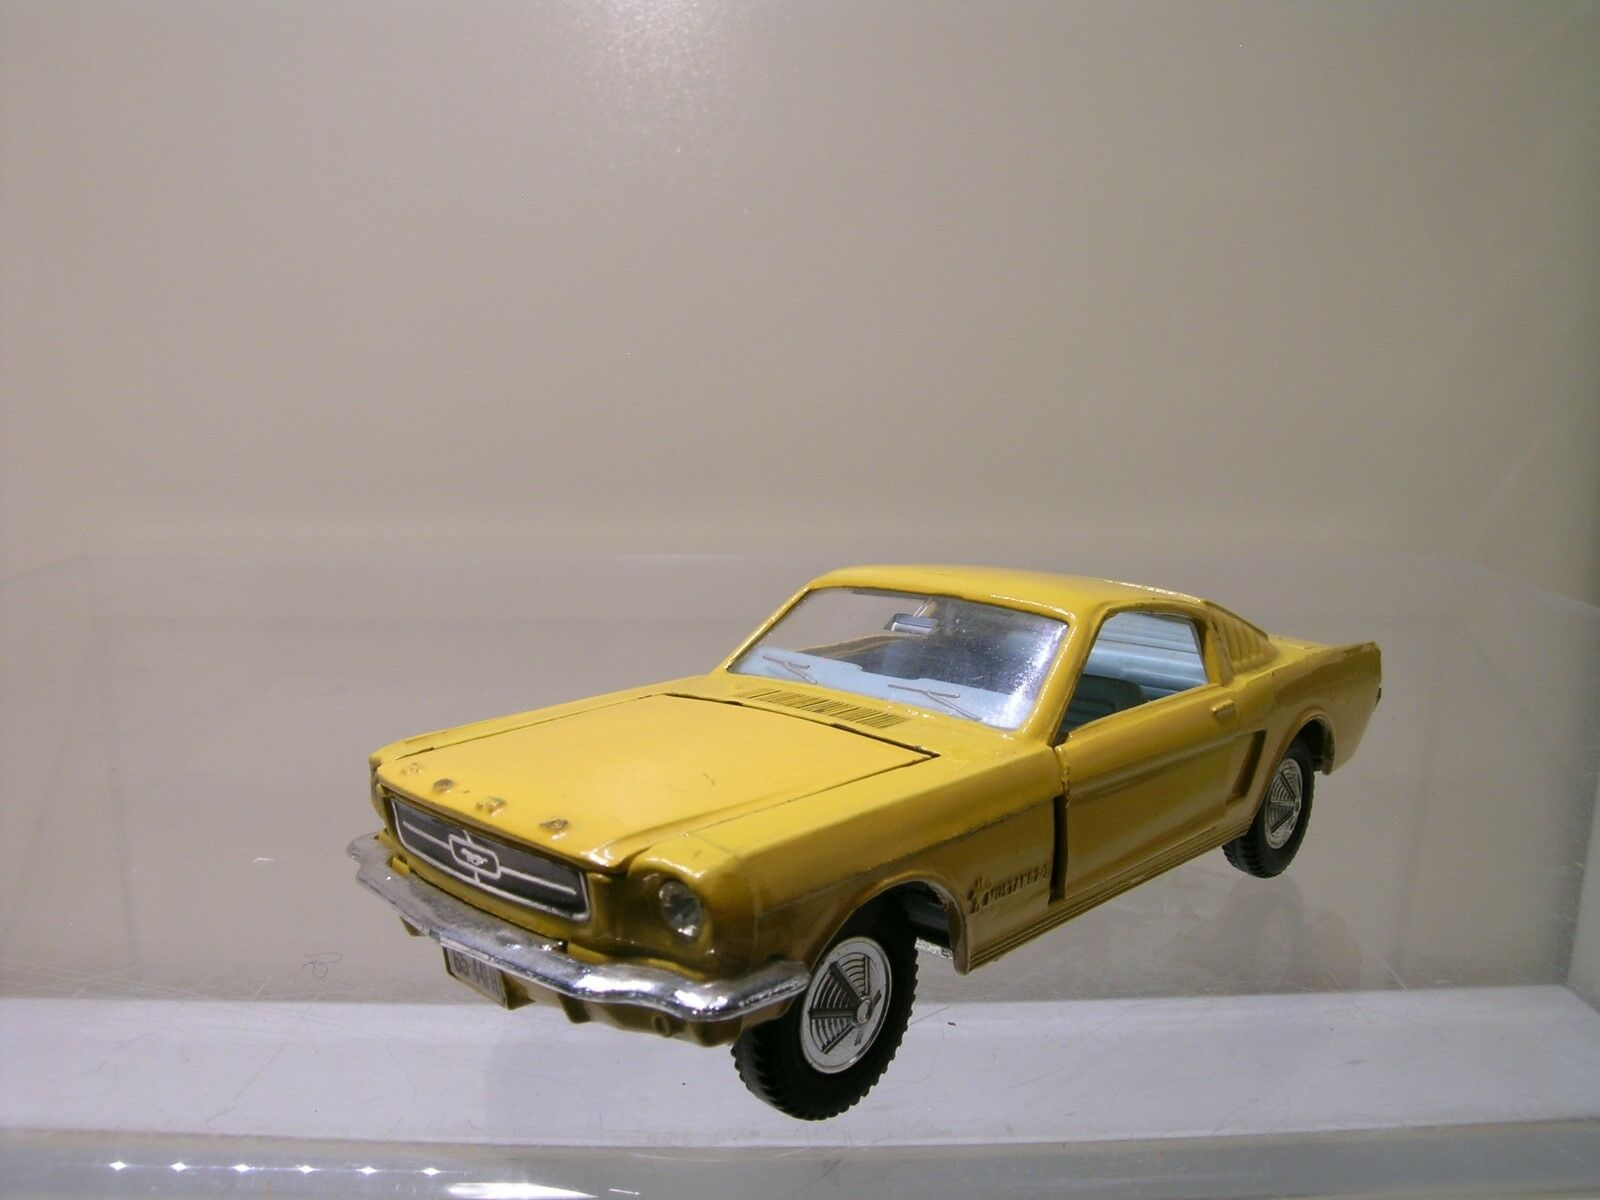 DINKY giocattoli FORD MUSTANG FASTBACK DEEP gituttio SautoCE COLOUR EXCLNM 1 43